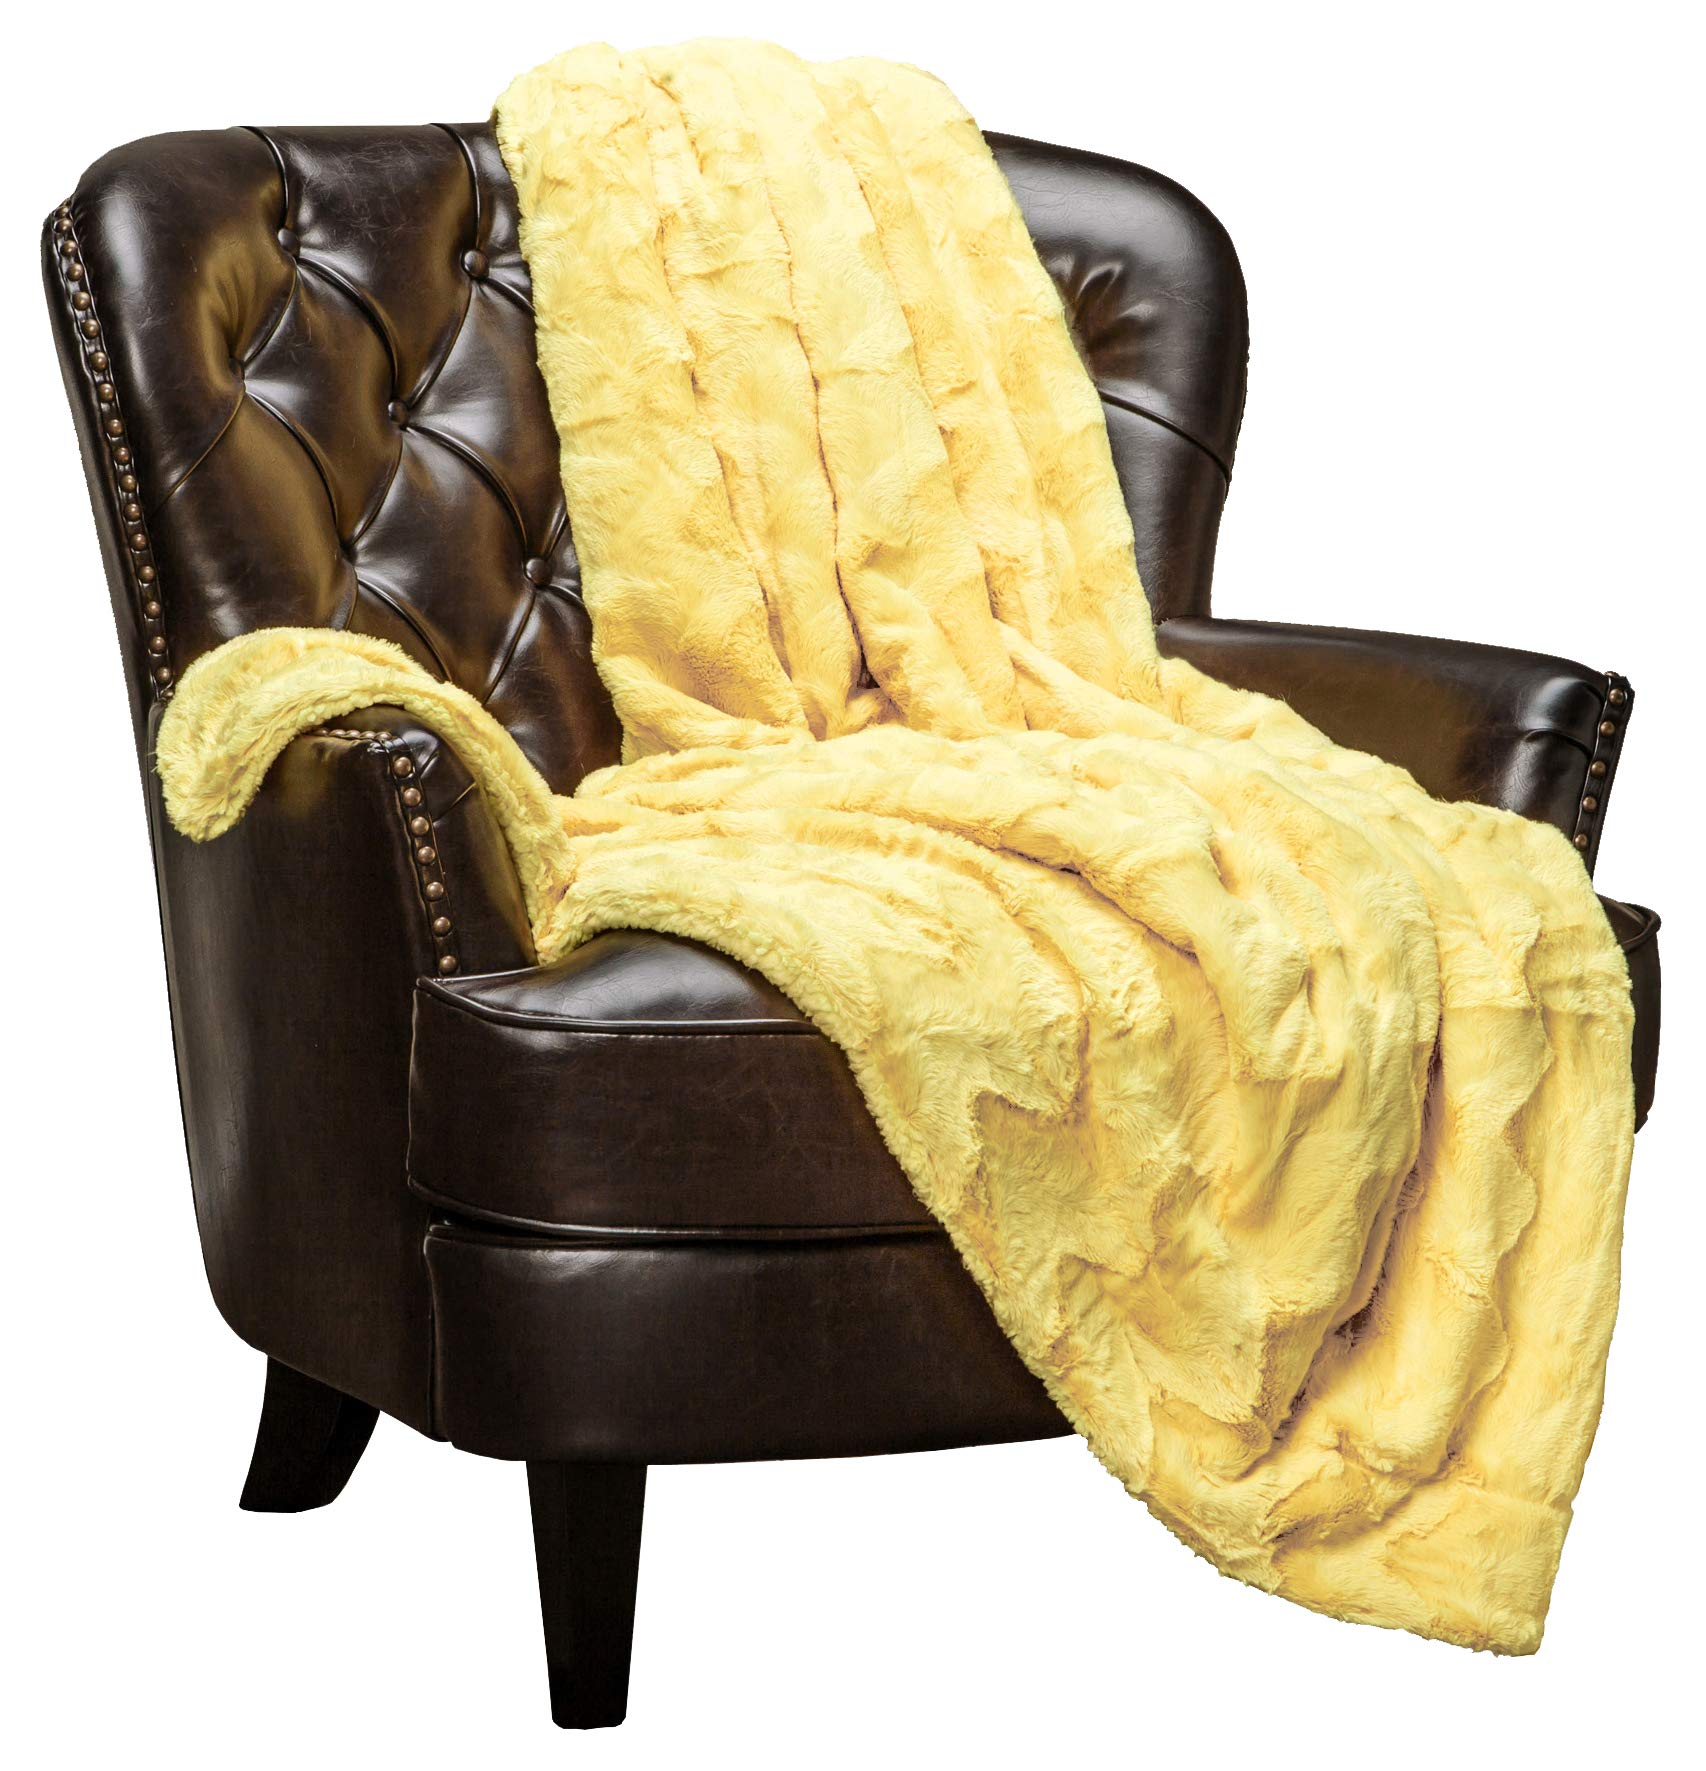 Chanasya Fur Throw Blanket for Bed Couch Chair Daybed - Soft Wave Embossed Pattern - Warm Elegant Cozy Fuzzy Fluffy Faux Fur Plush Suitable for Fall Winter Summer Spring (50'' x 65'') - Yellow Blanket